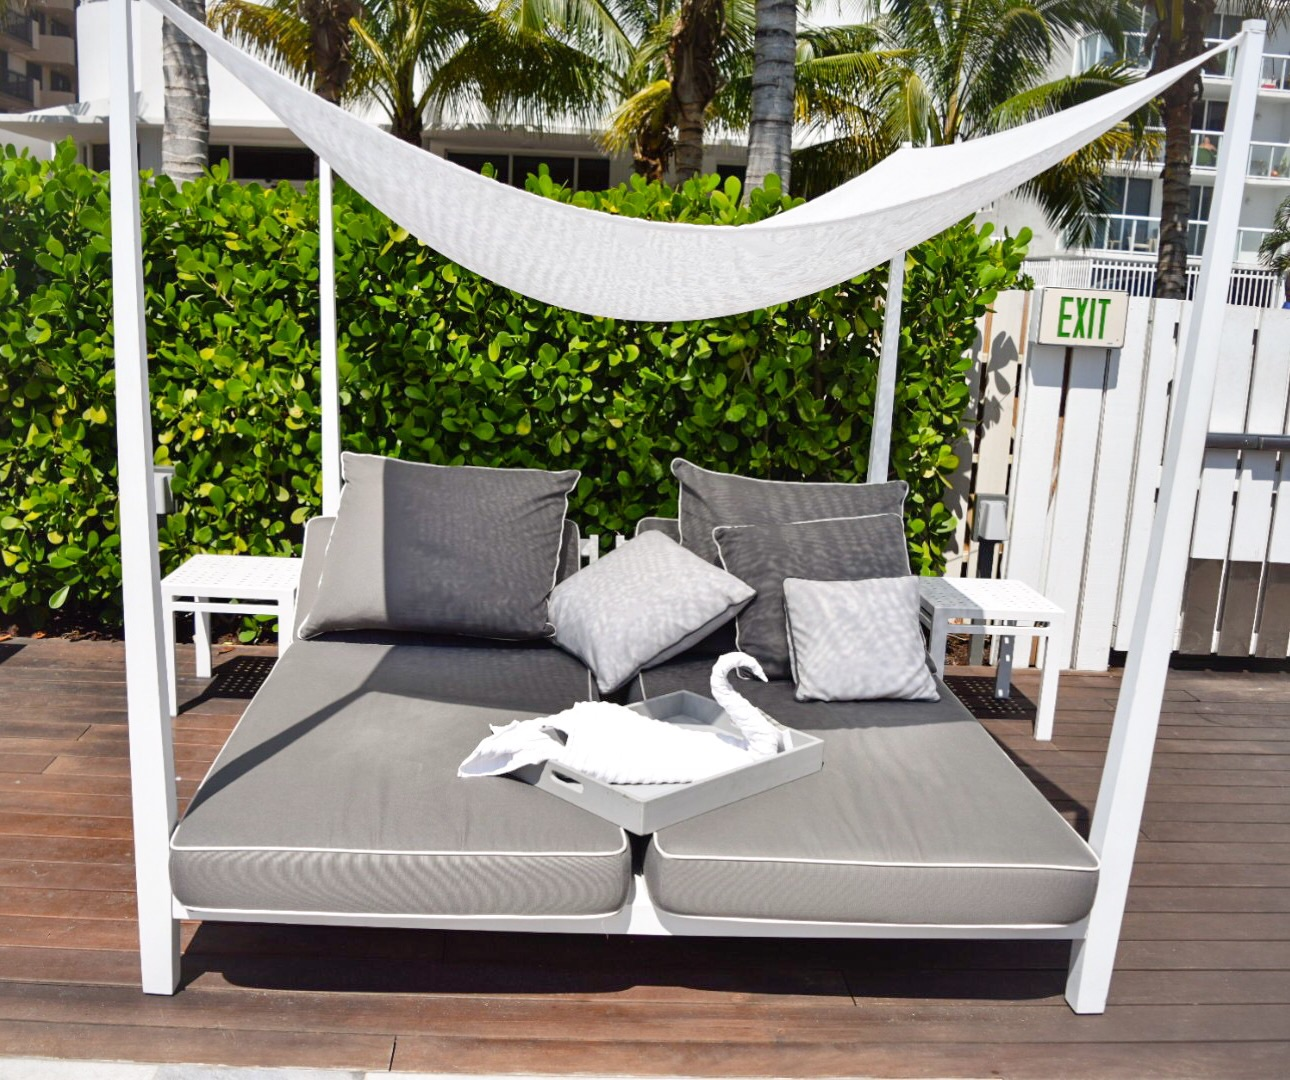 miami metropolitan by como – an urban retreat in the city – jona  - there were more four poster beds in a shaded area with palm trees just bythe gate access to the beach